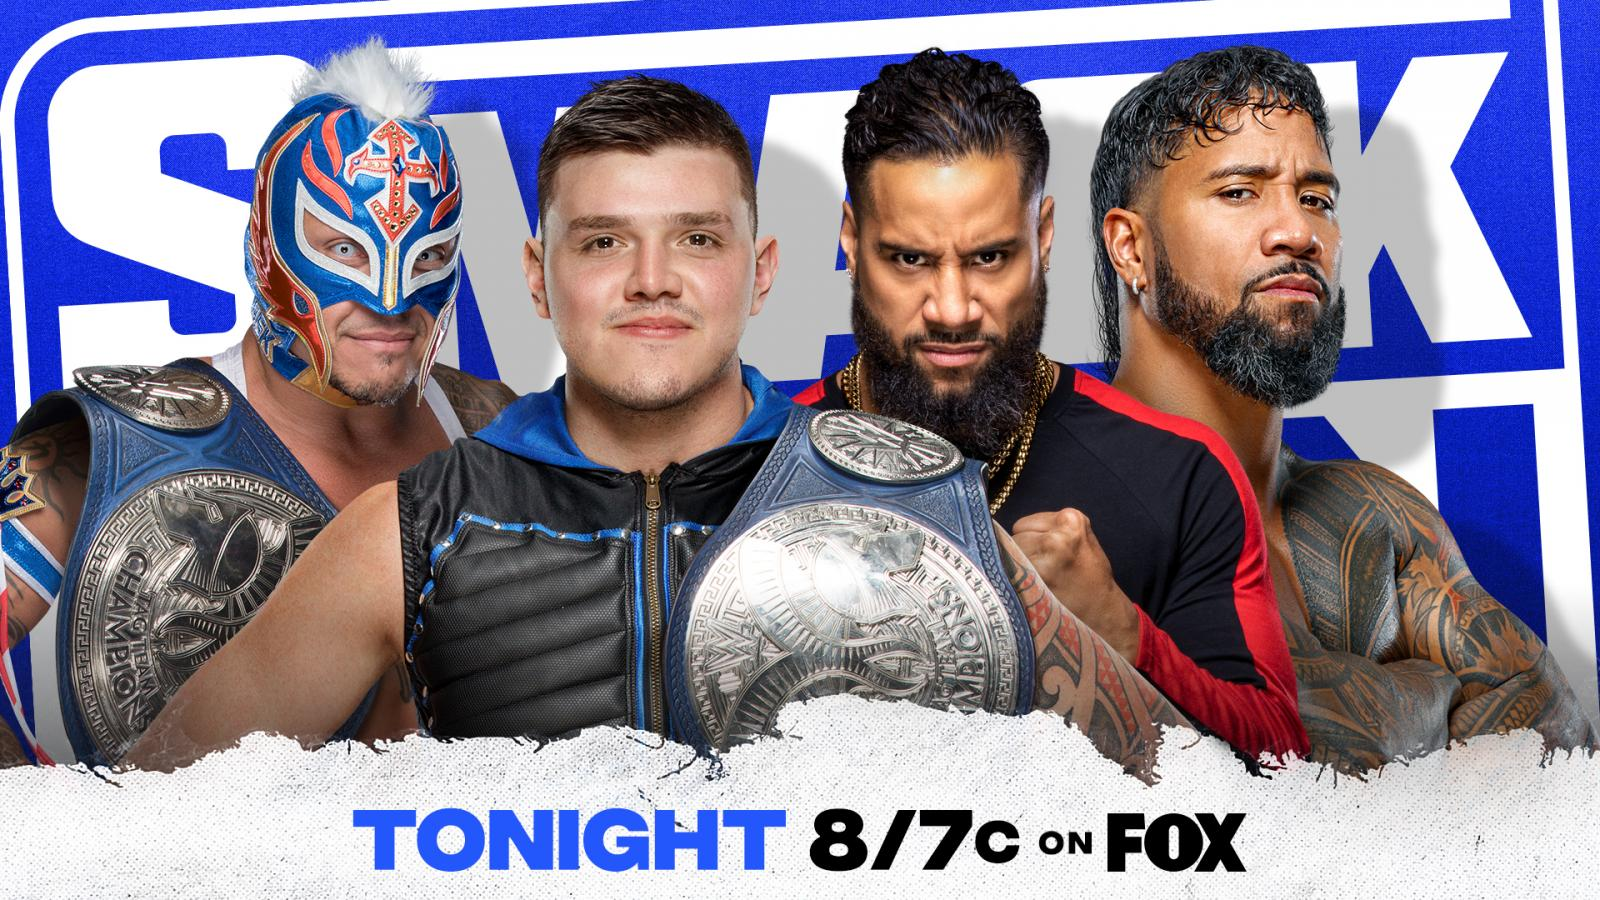 WWE SmackDown Results – Roman Reigns Destroys The Mysterios, Apollo Crews Defends, More